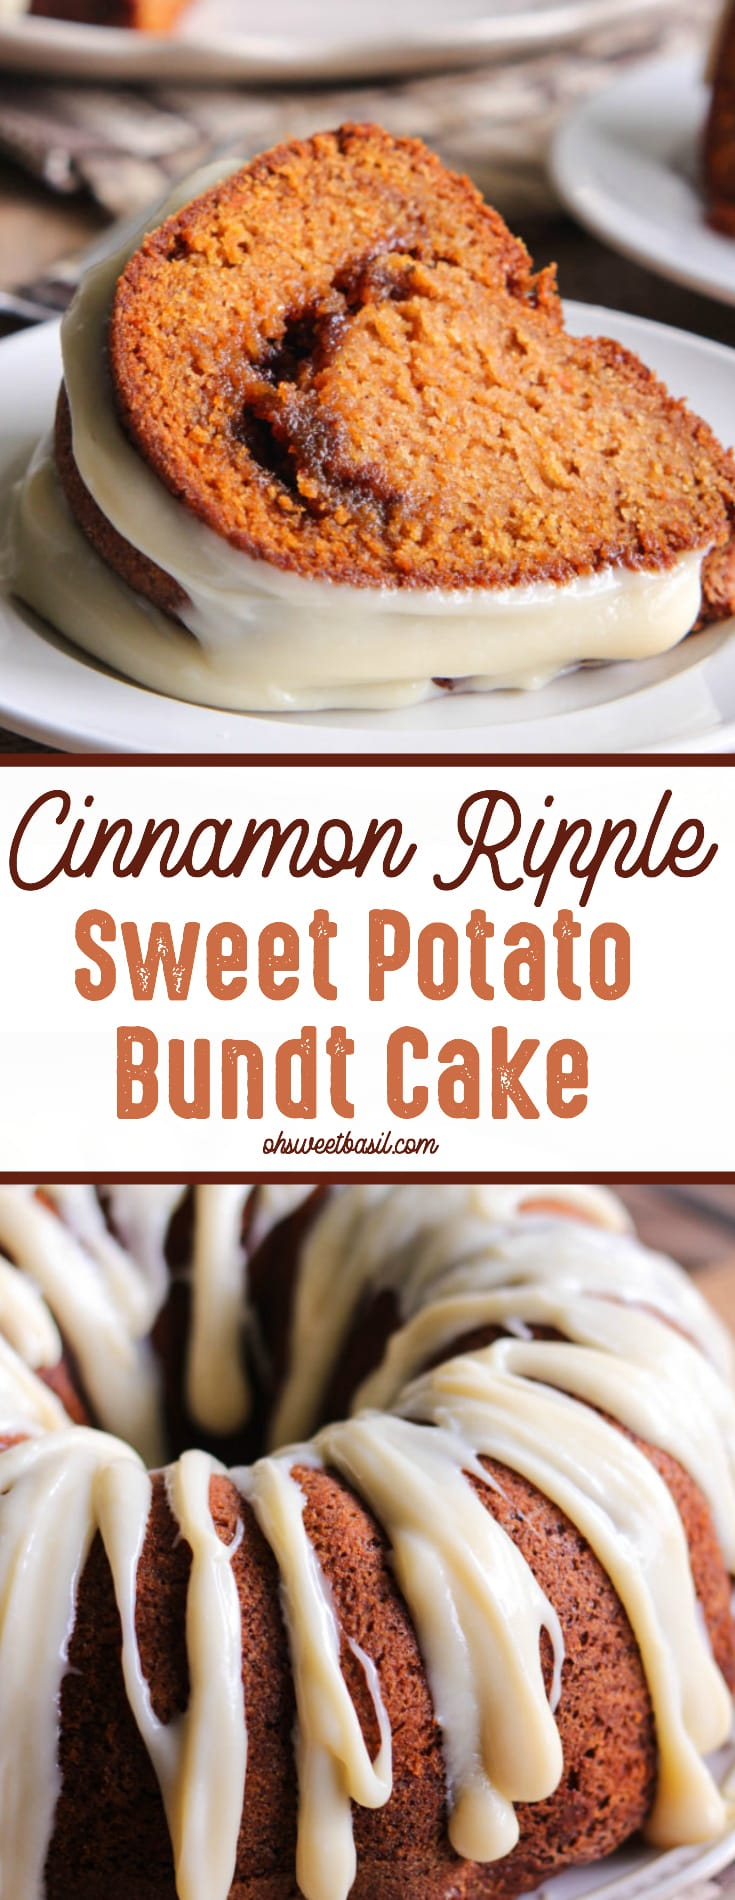 A slice of Cinnamon Ripple Sweet Potato Bundt Cake